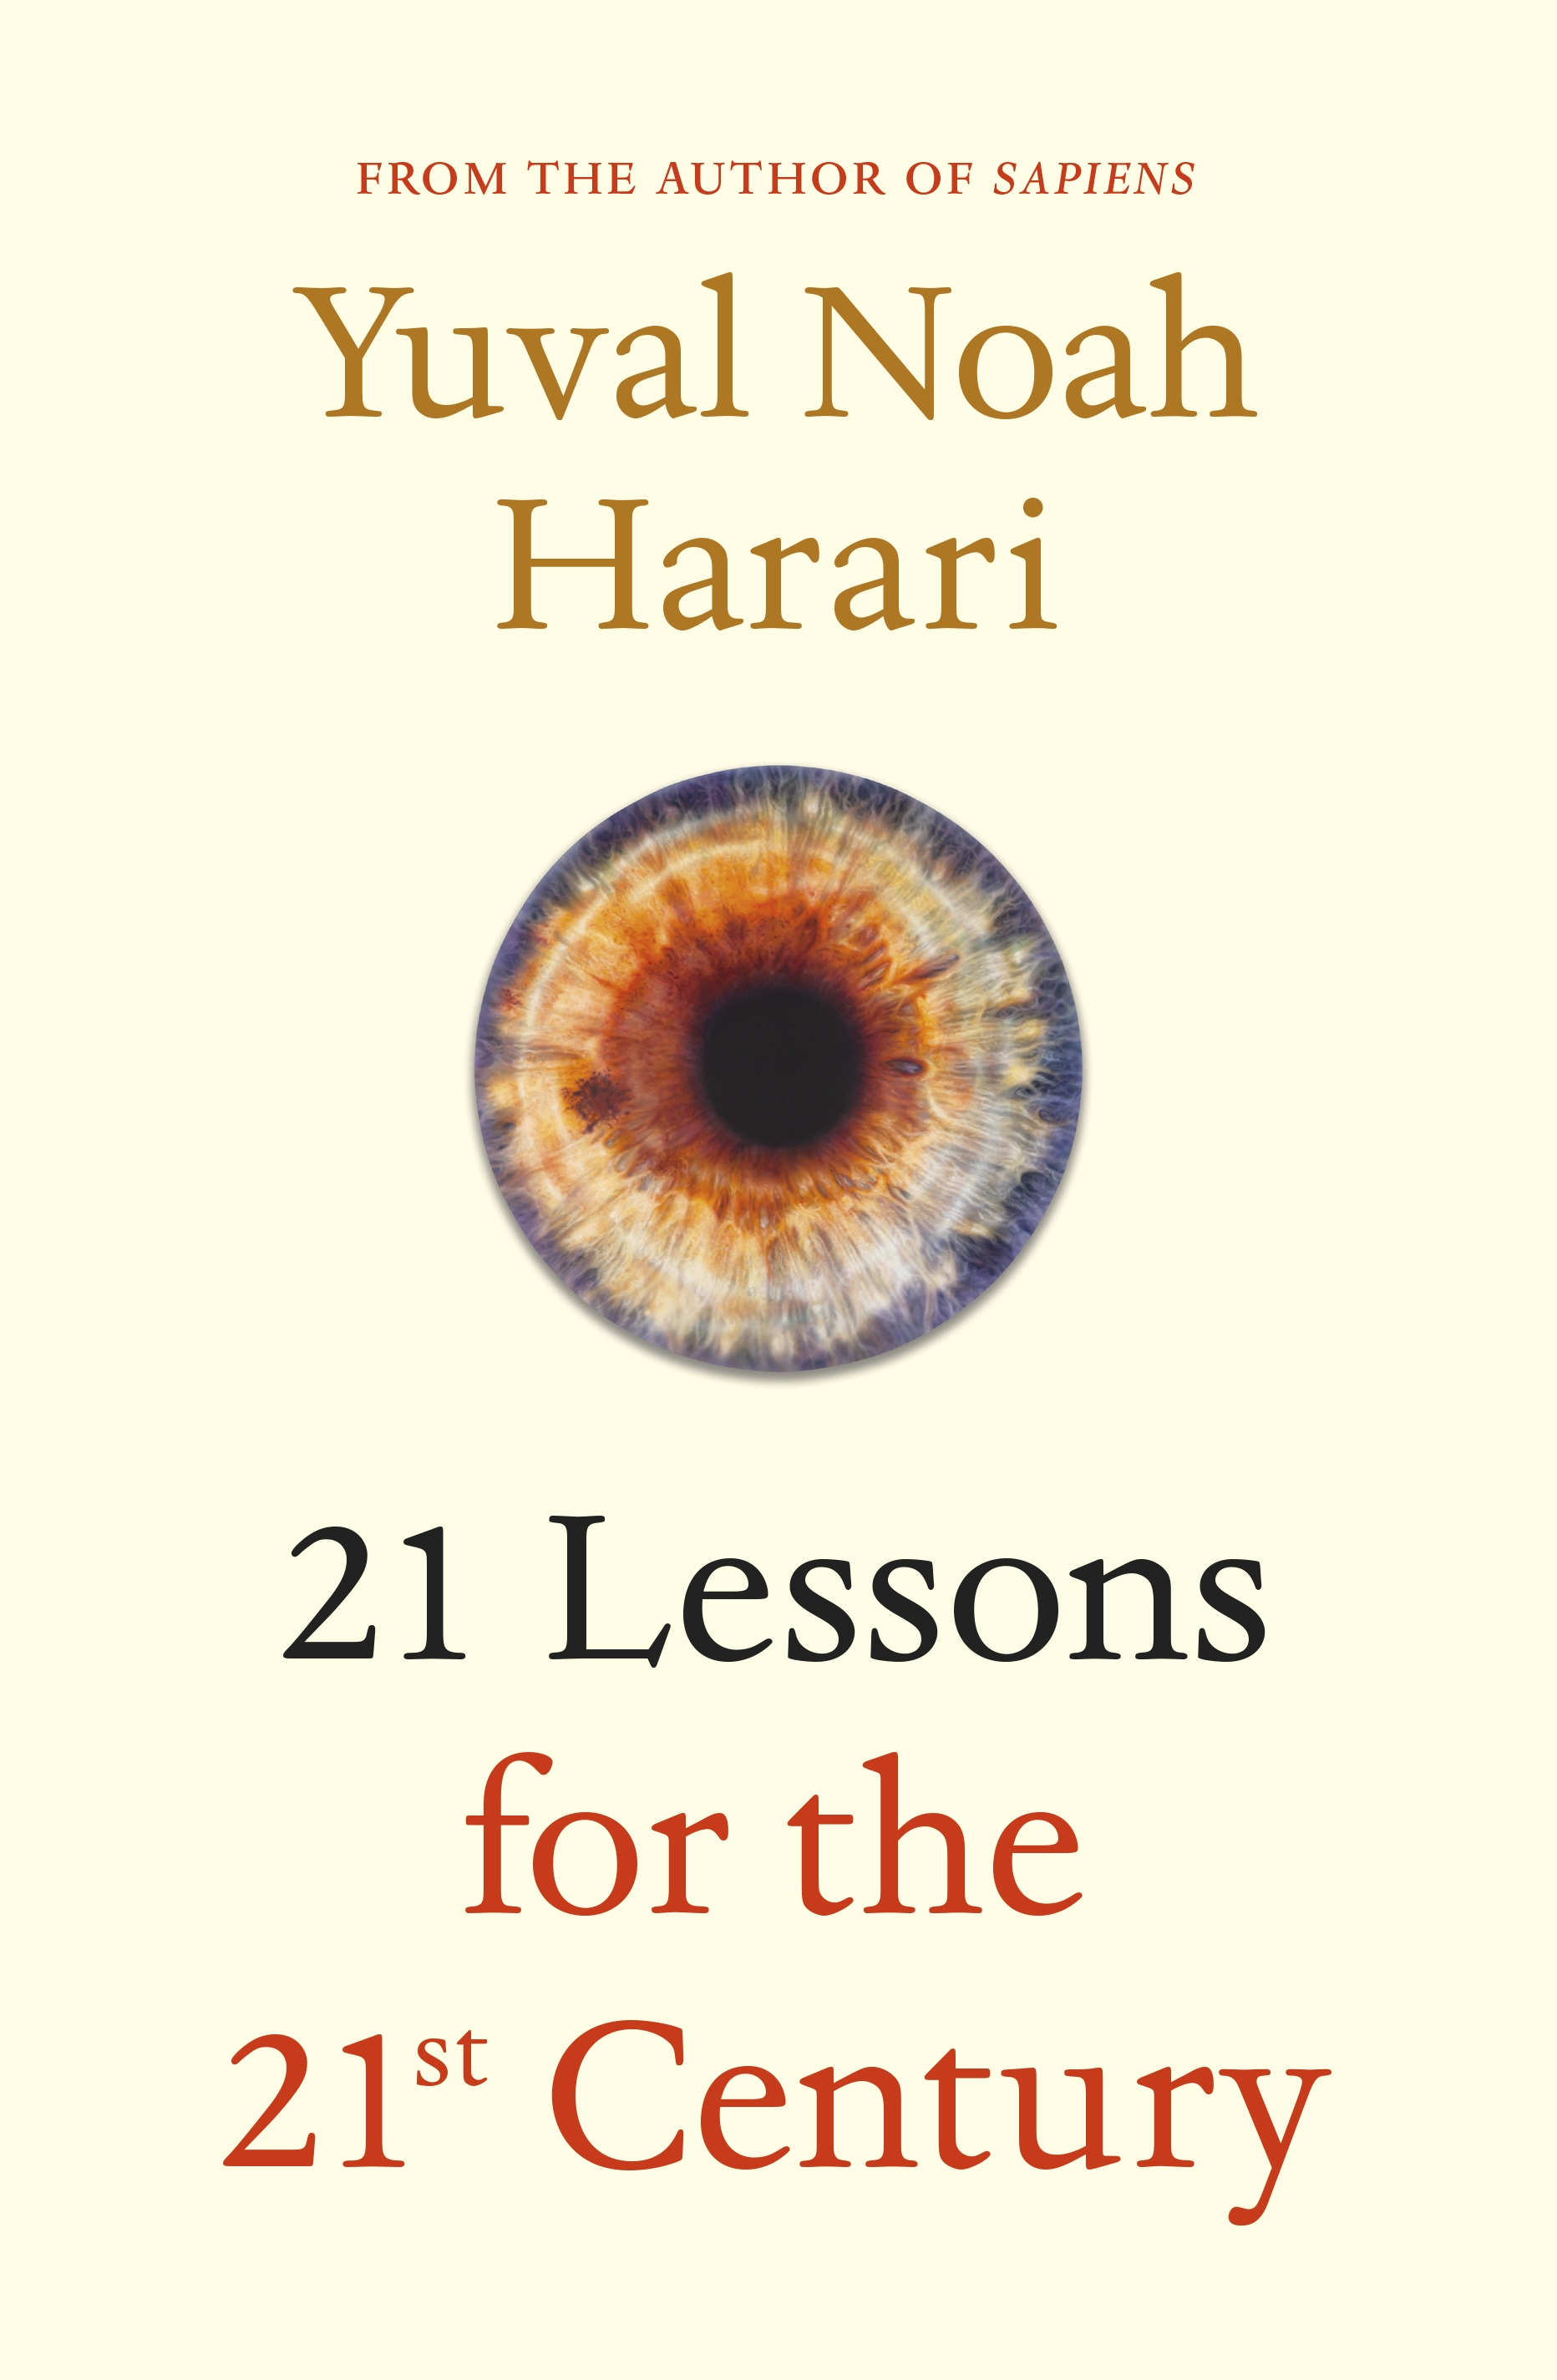 21 Lessons for the 21st Century by Yuval Noah Harari, ISBN: 9781787330870